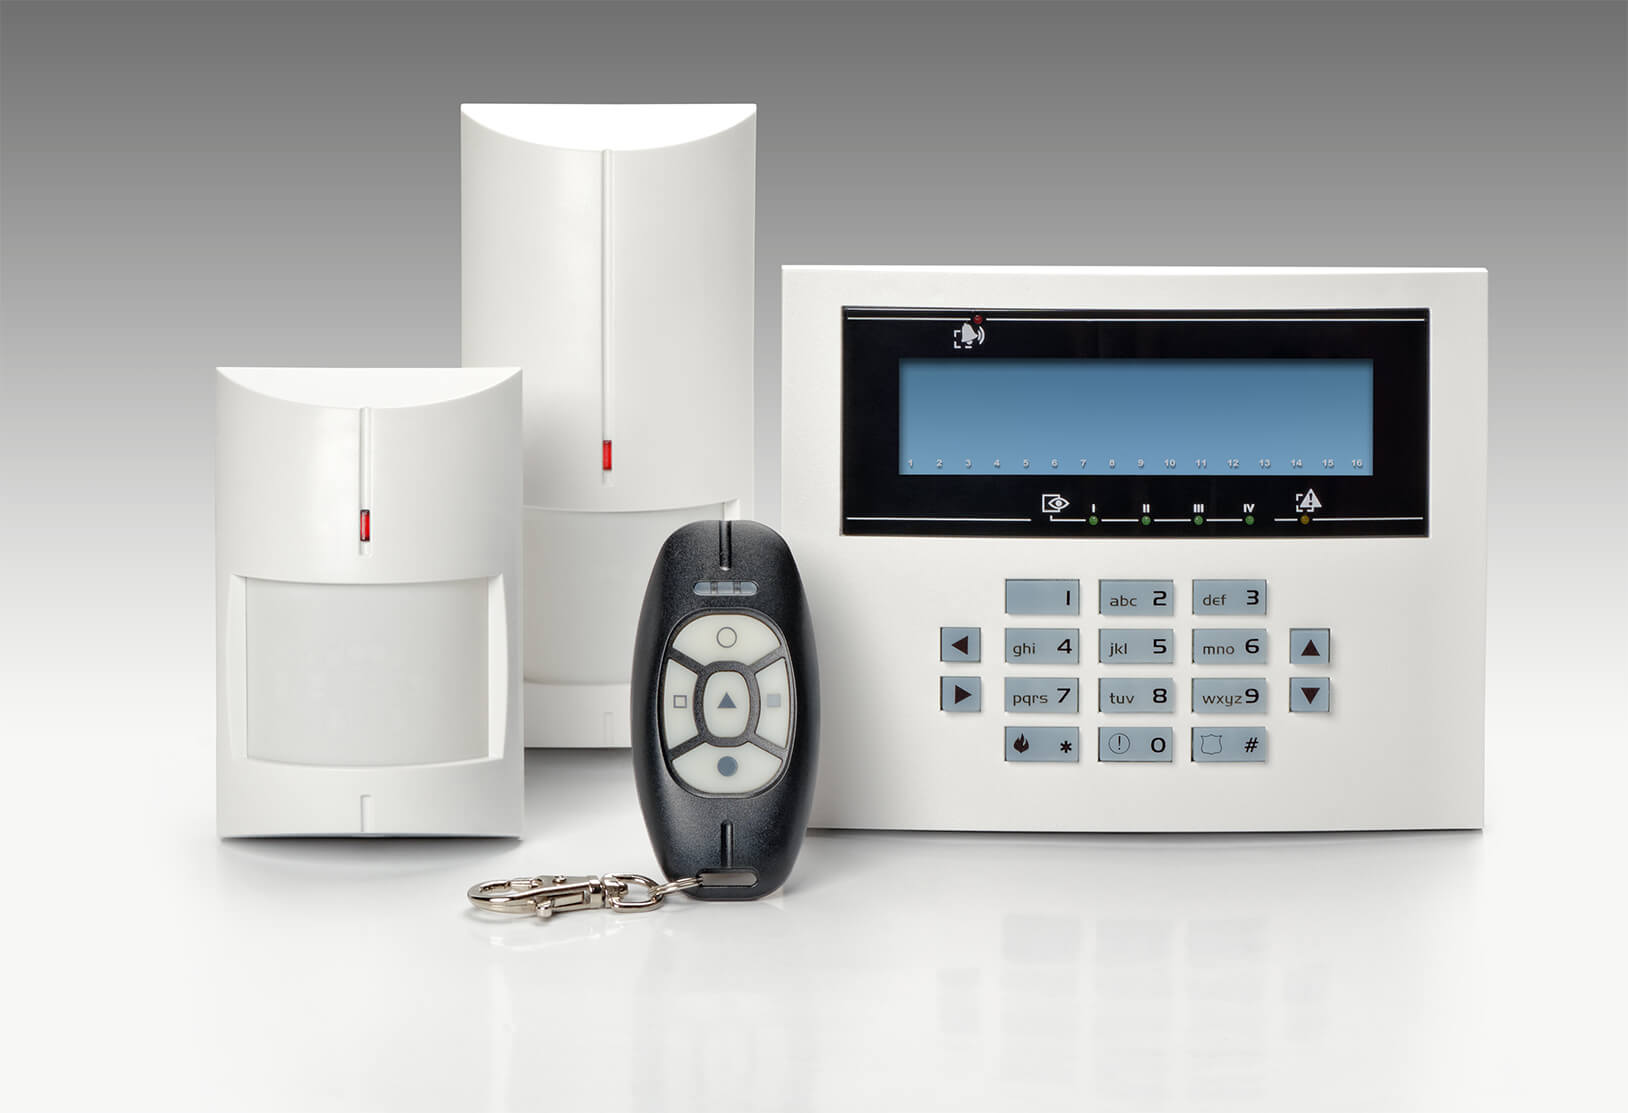 Business & Residential NACOSS Approved Burglar Alarms In Beckton E6 - Local Beckton E6 security company.Call 02078872244 - Dedicated to Safety & Security. Companies, shops and homes ..